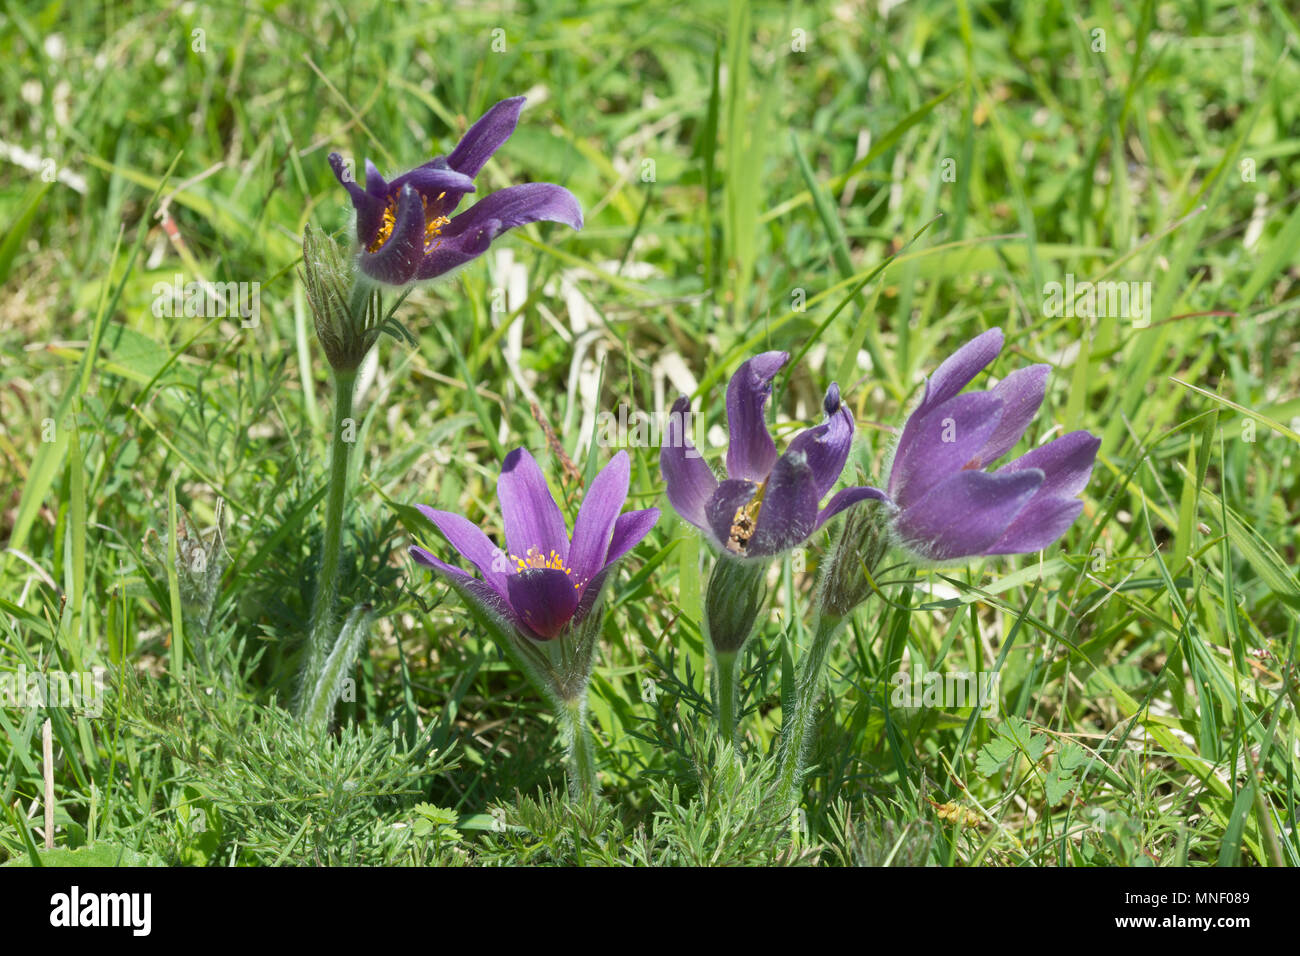 Pasqueflowers (Pulsatilla vulgaris), a vulnerable priority species, on chalk downland at Hartslock Nature Reserve in South Oxfordshire, UK - Stock Image